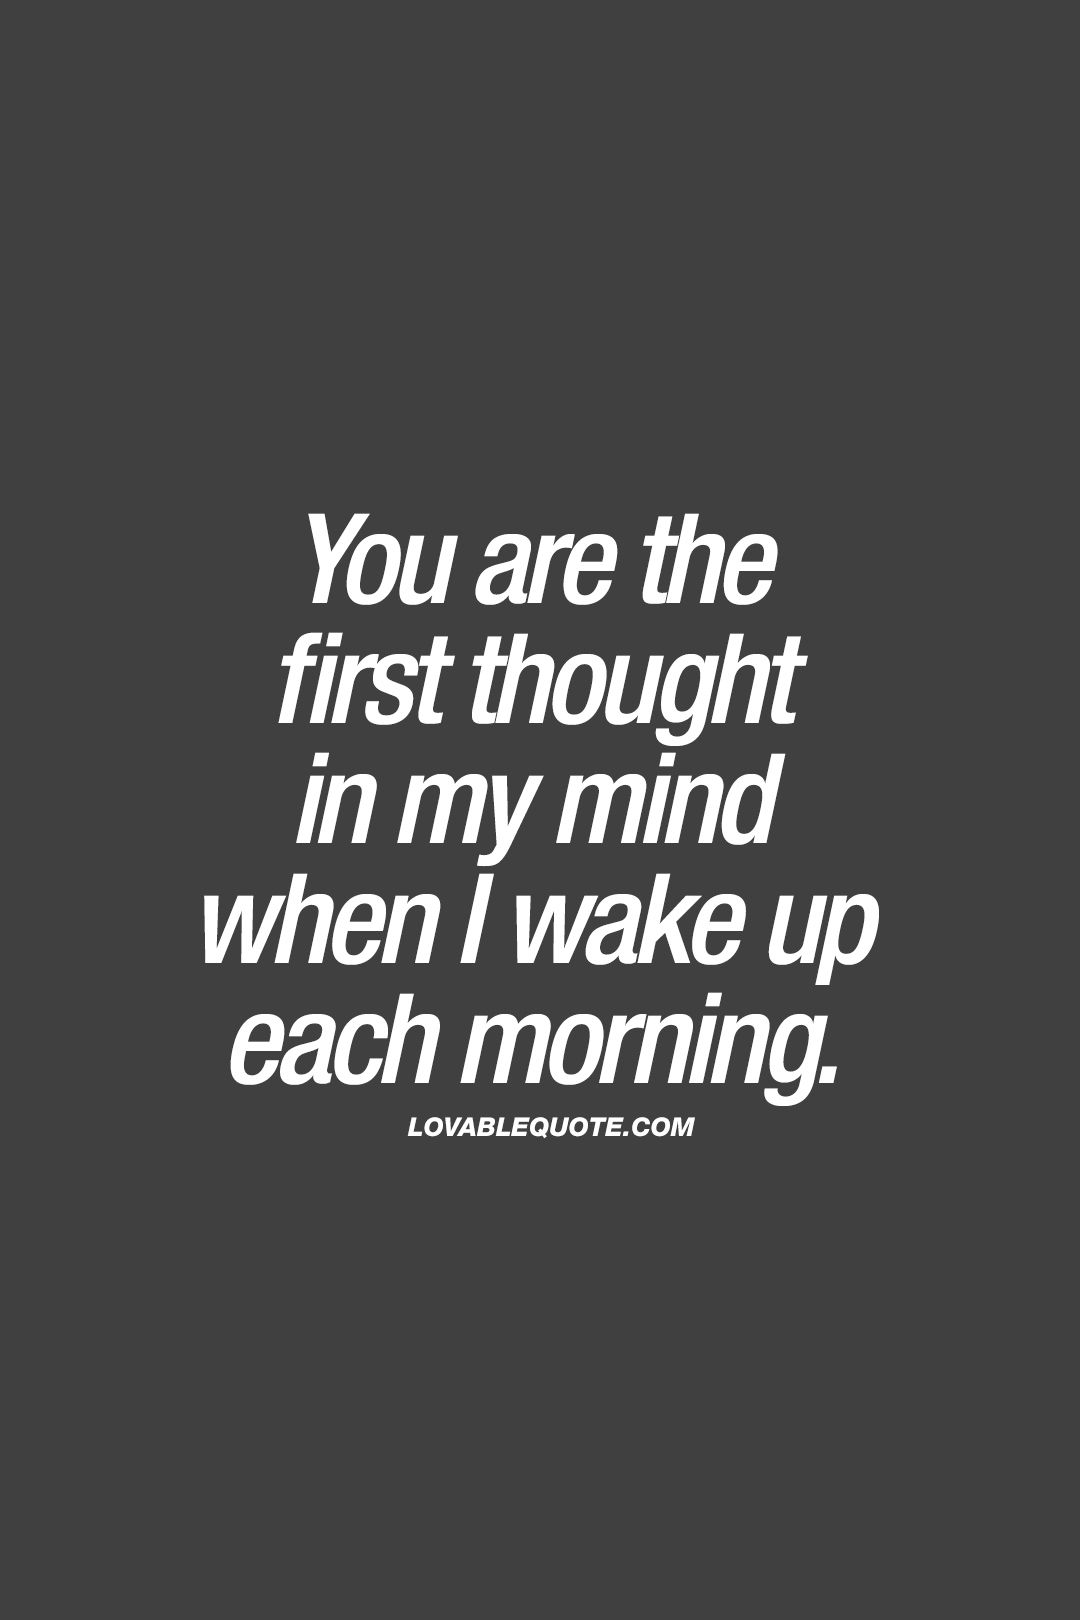 You Are The First Thought In My Mind When I Wake Up Each Morning When You Think Thinking Of You Quotes Good Morning Sweetheart Quotes Morning Texts For Him